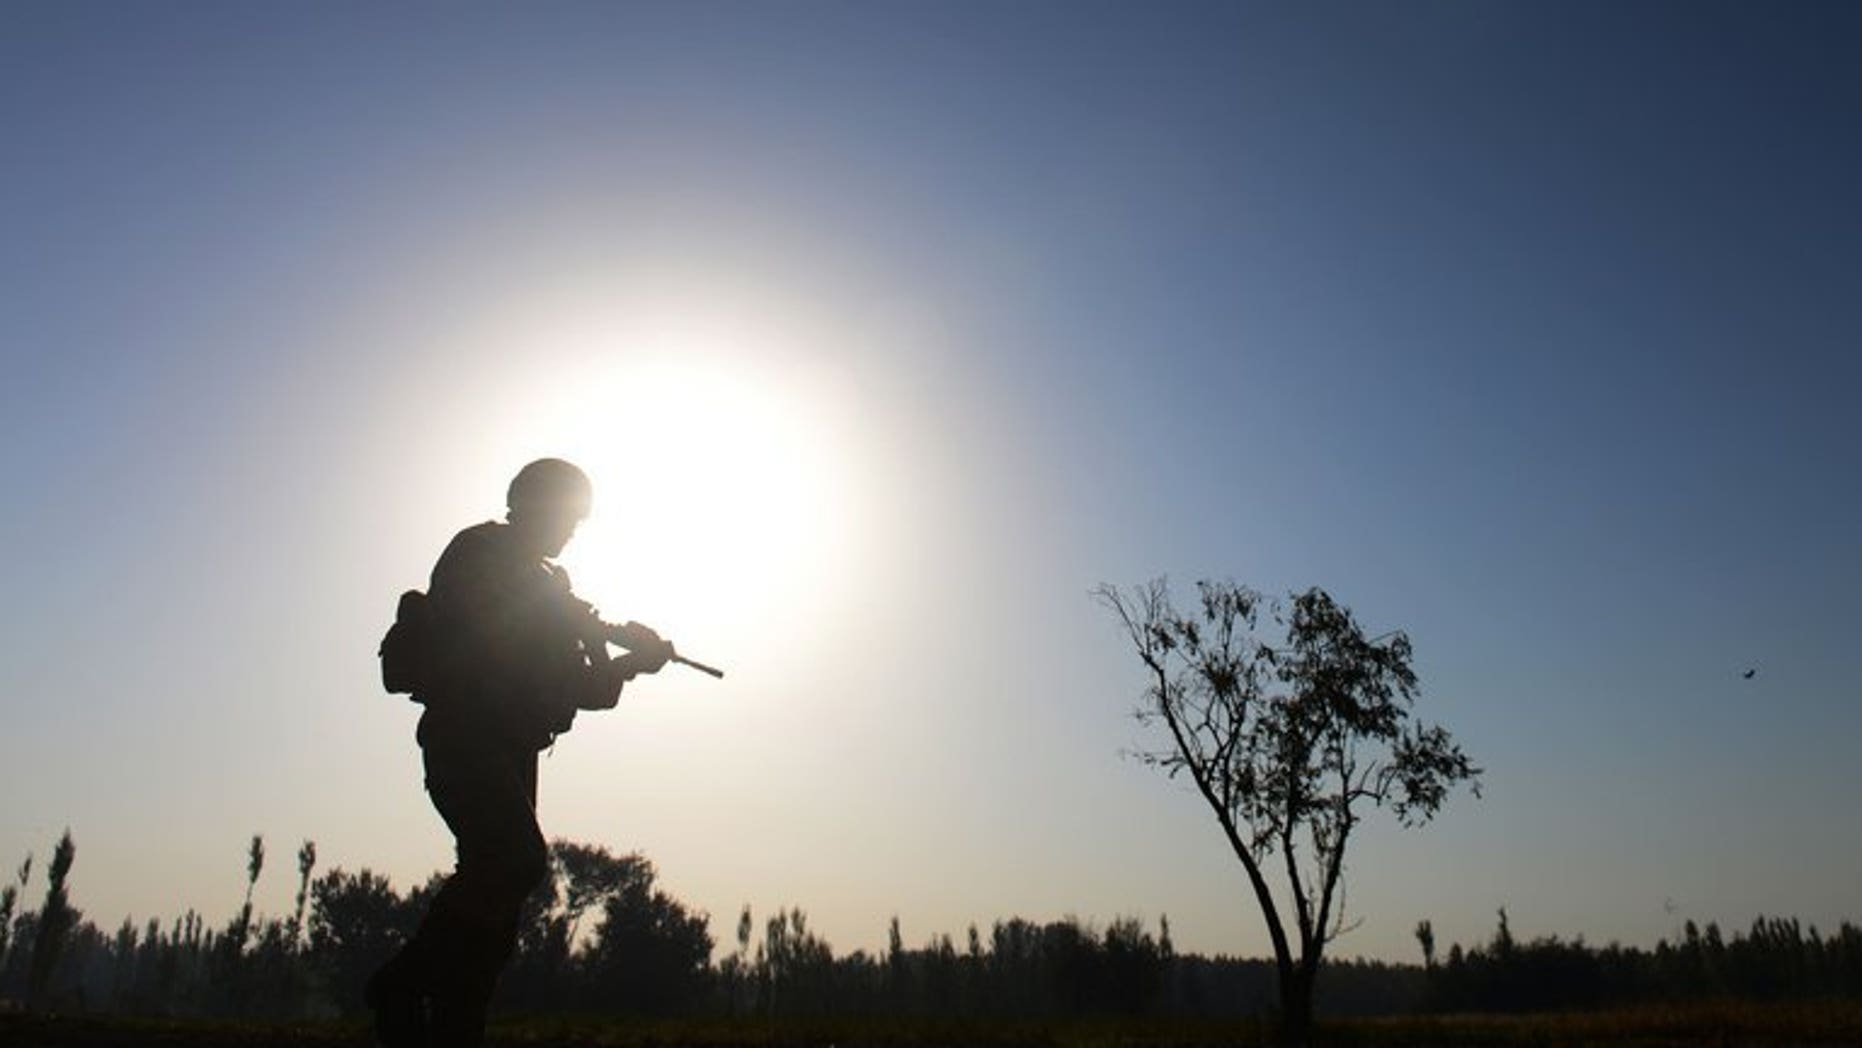 A soldier serving with the NATO-led International Security Assistance Force (ISAF) on patrol near Baraki Barak in Afghanistan's Logar Province, on October 13, 2012. NATO has confirmed that three foreign soldiers were killed during an insurgent attack in volatile eastern Afghanistan.